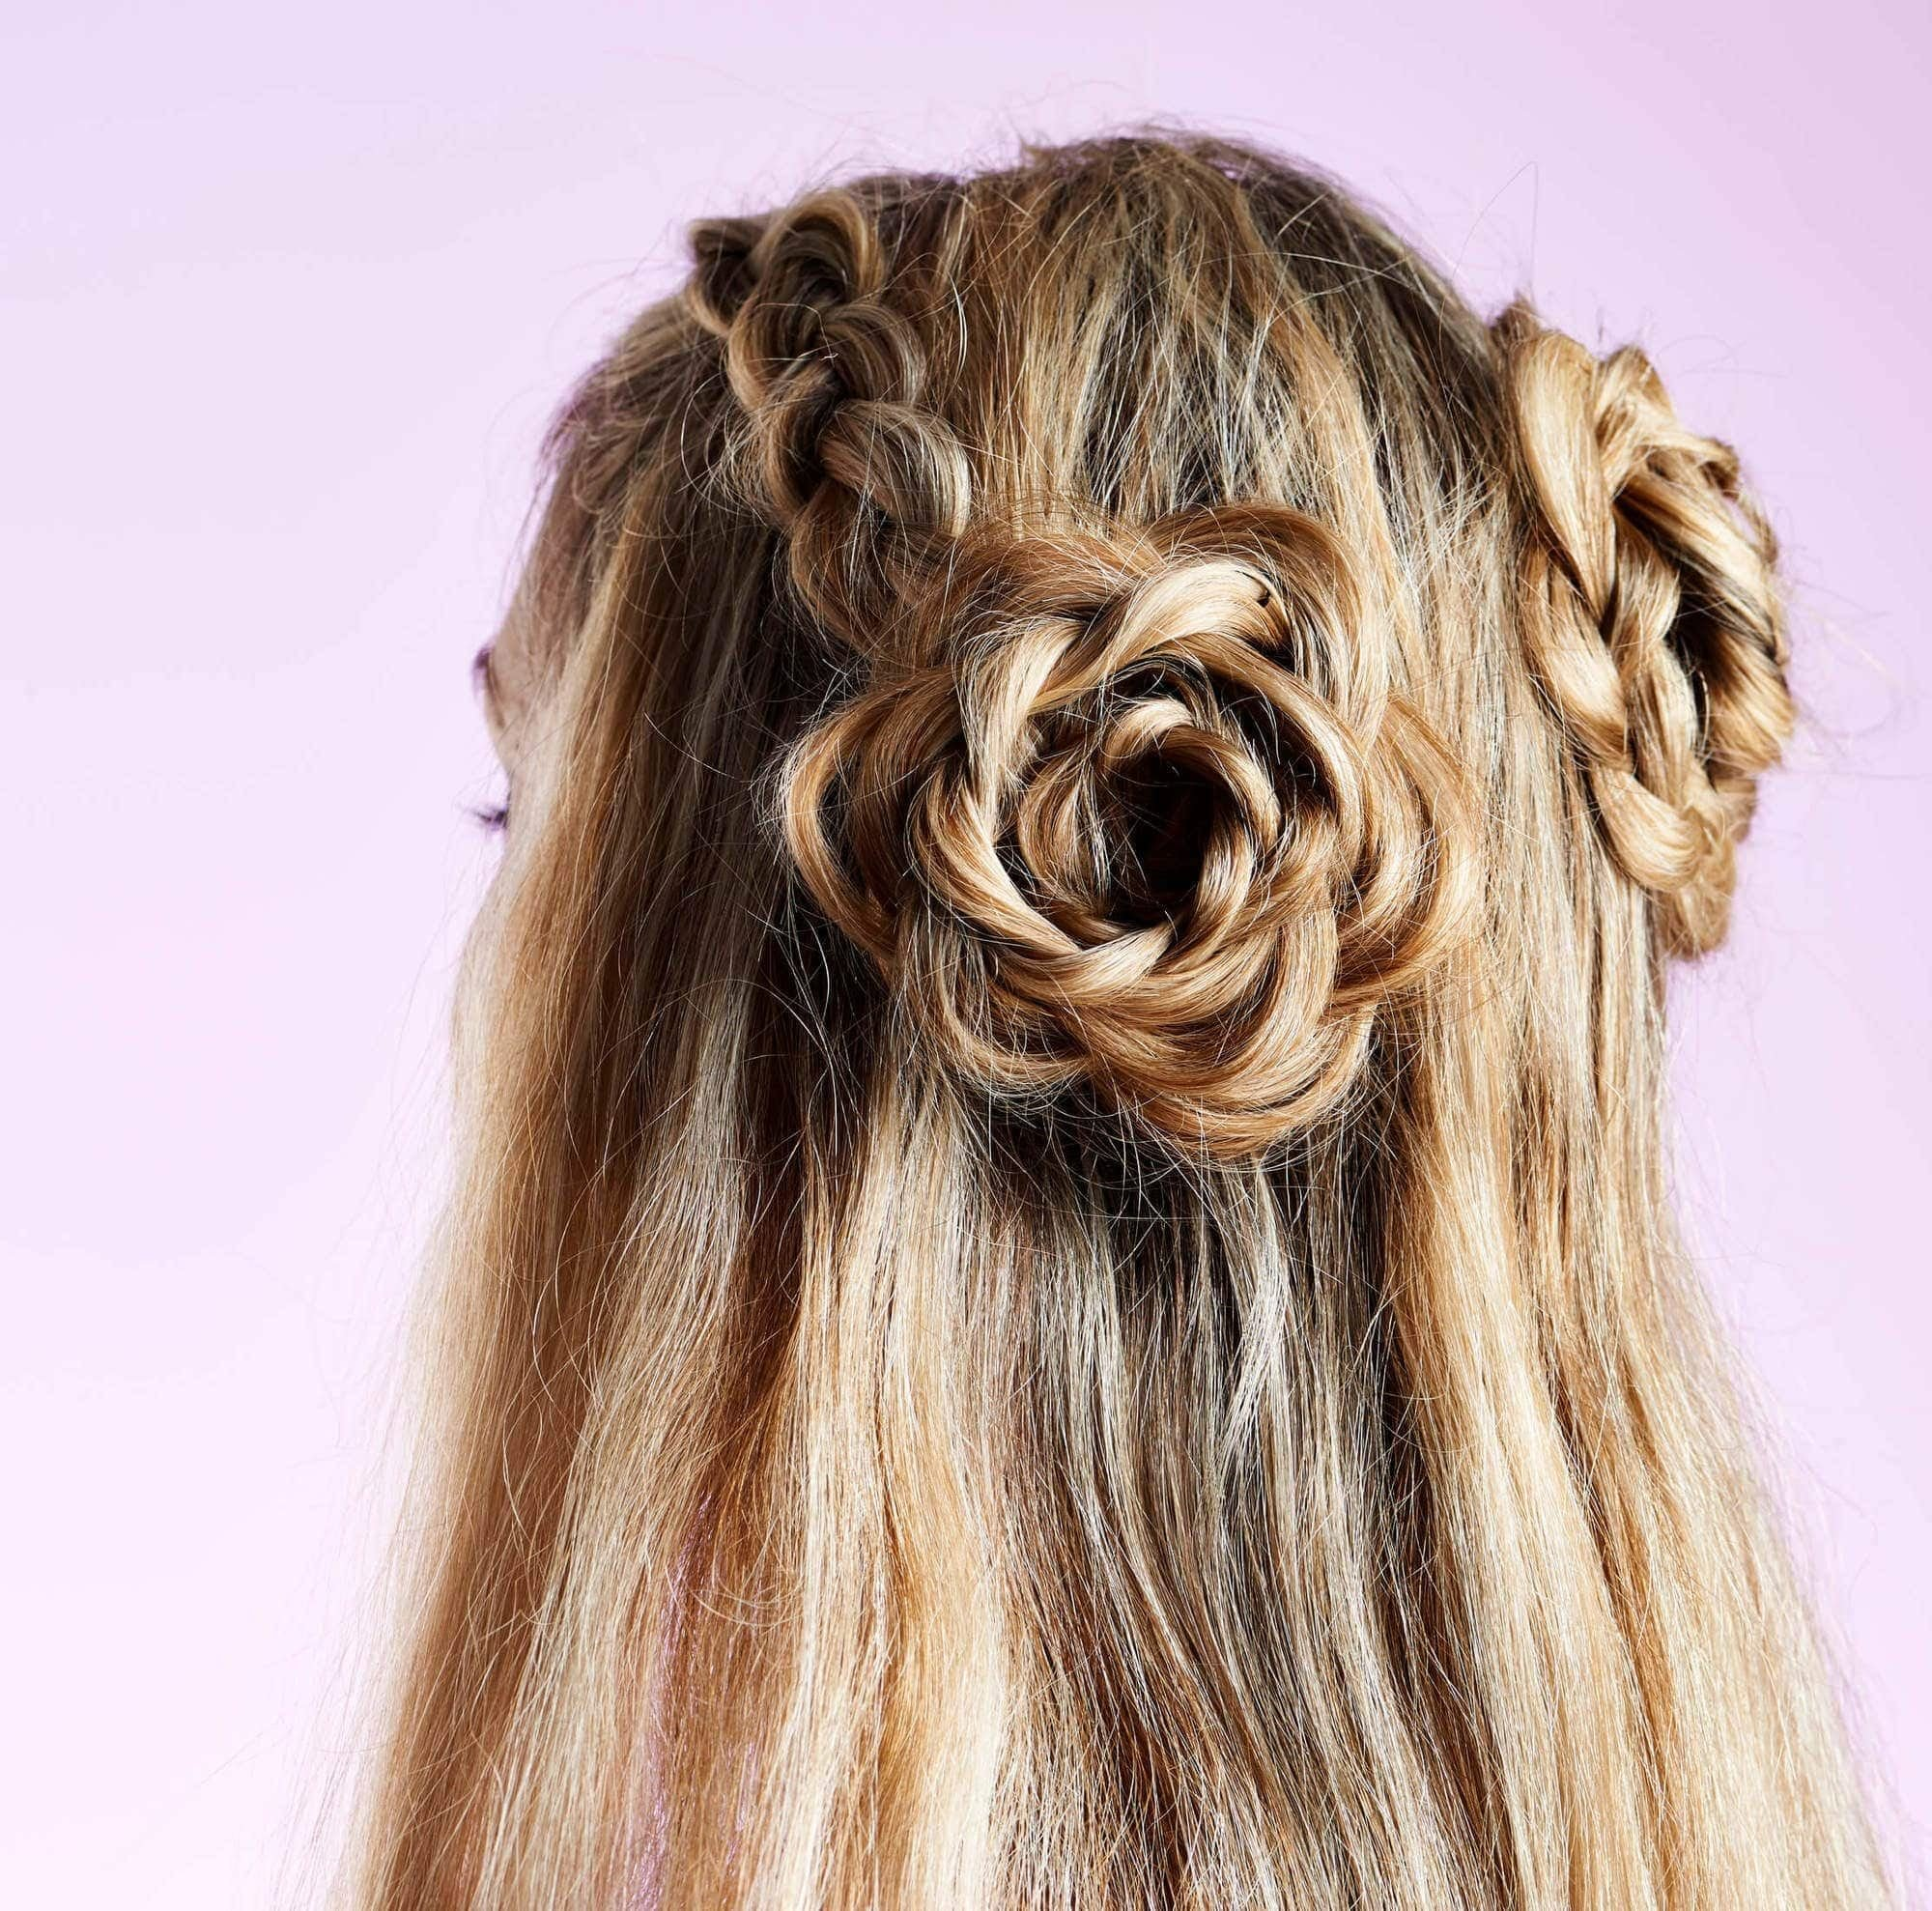 The Best In Bloom 10 Flower Hairstyles We're Gushing Over Now Pictures